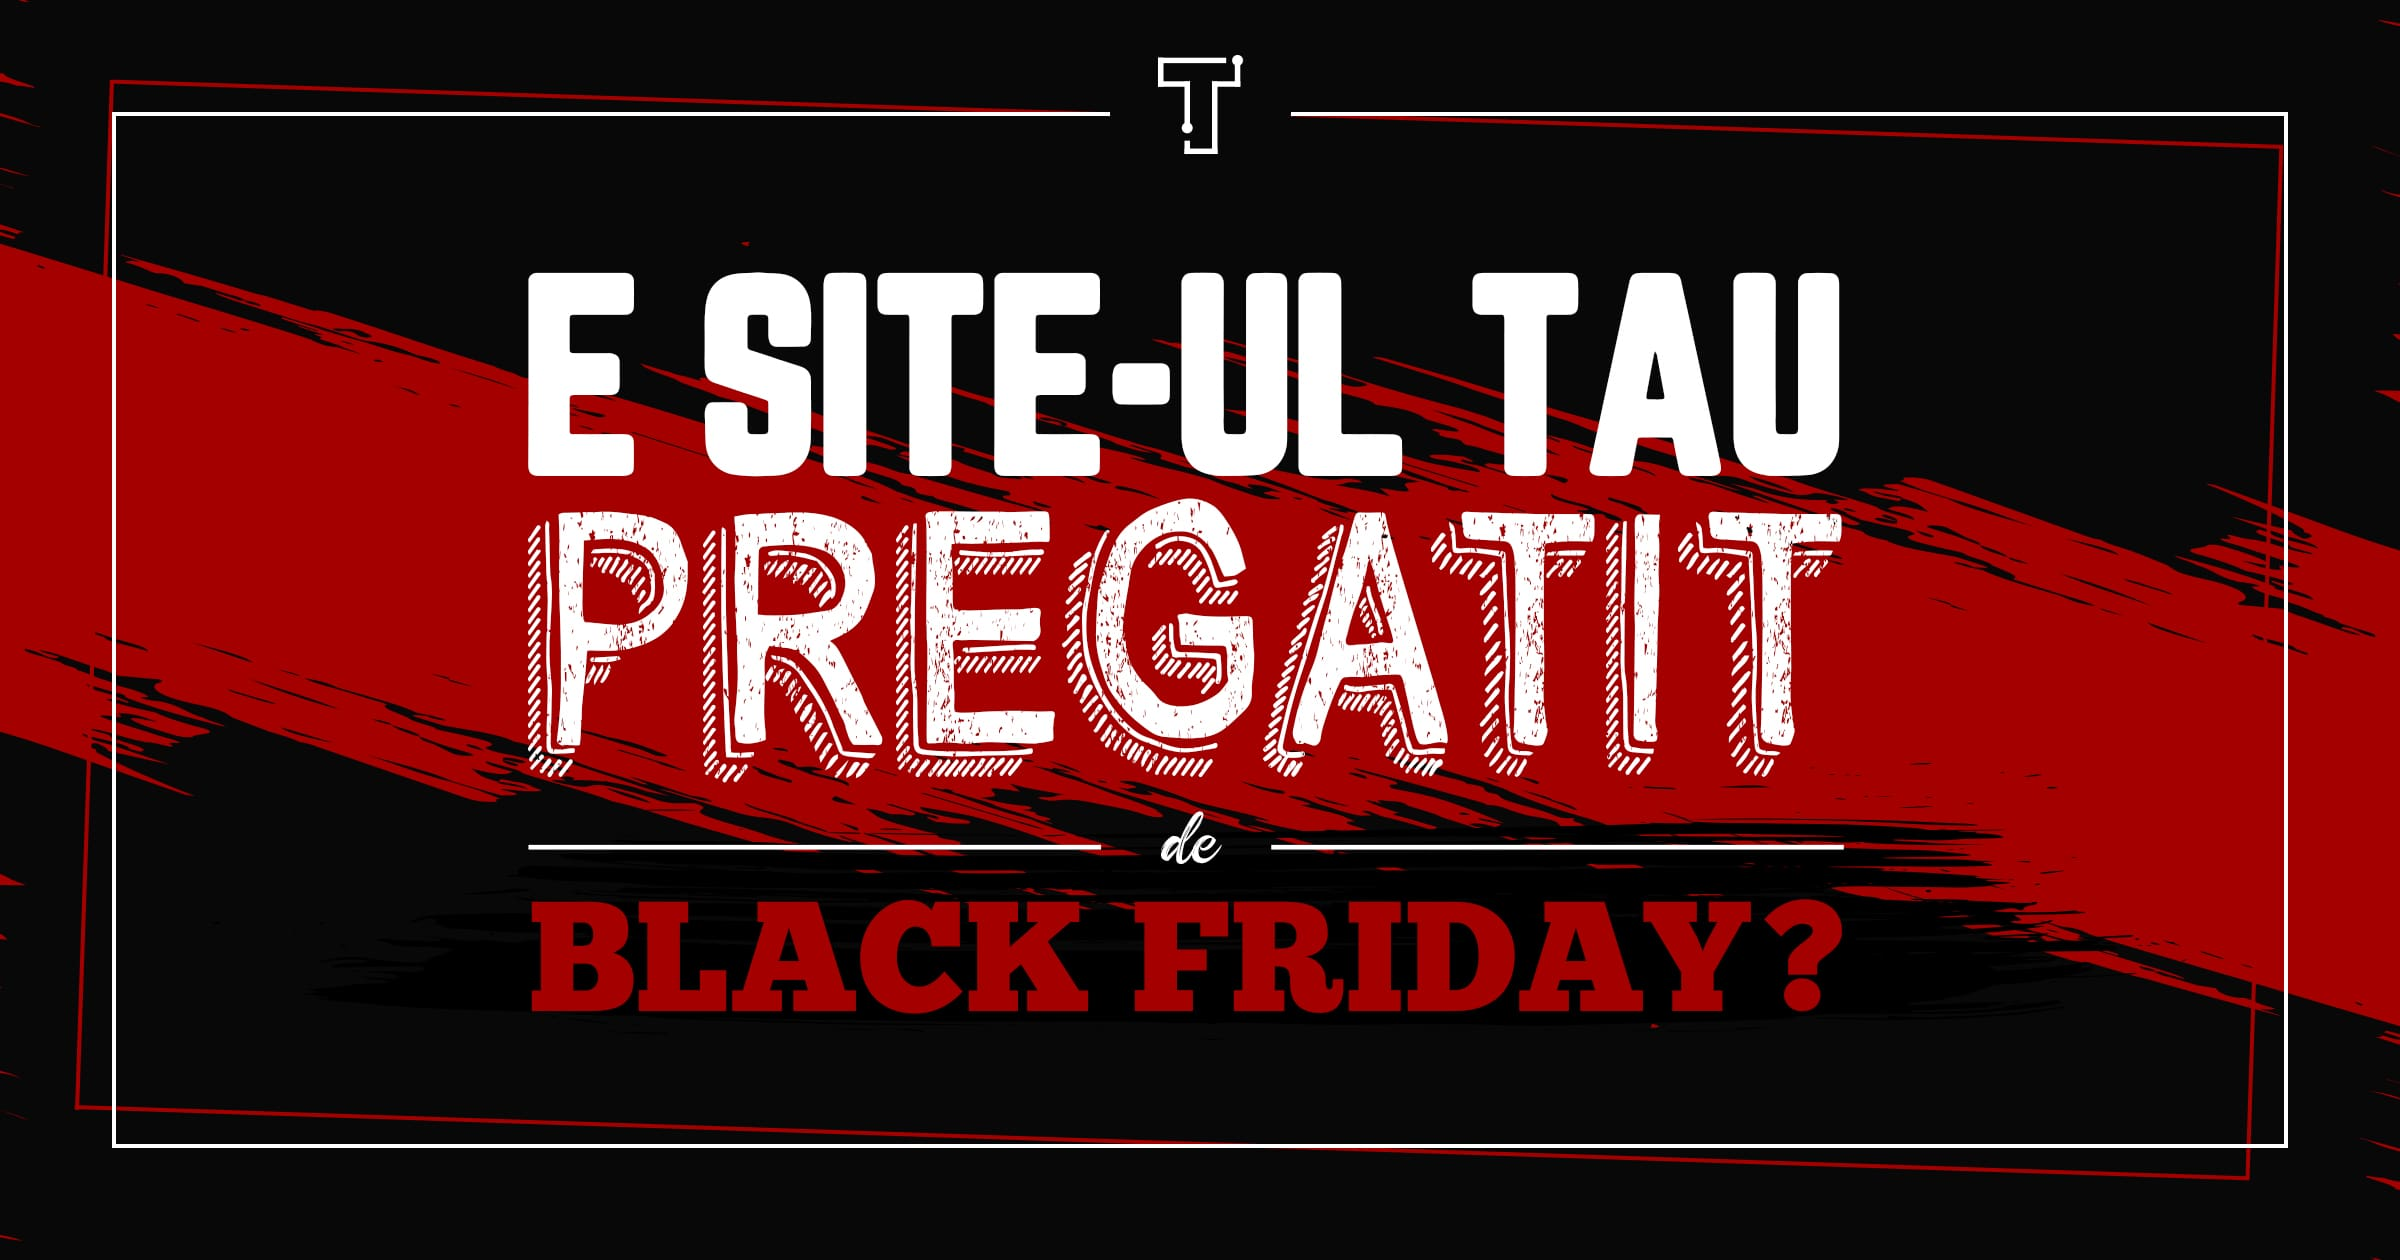 pregatiri de black friday